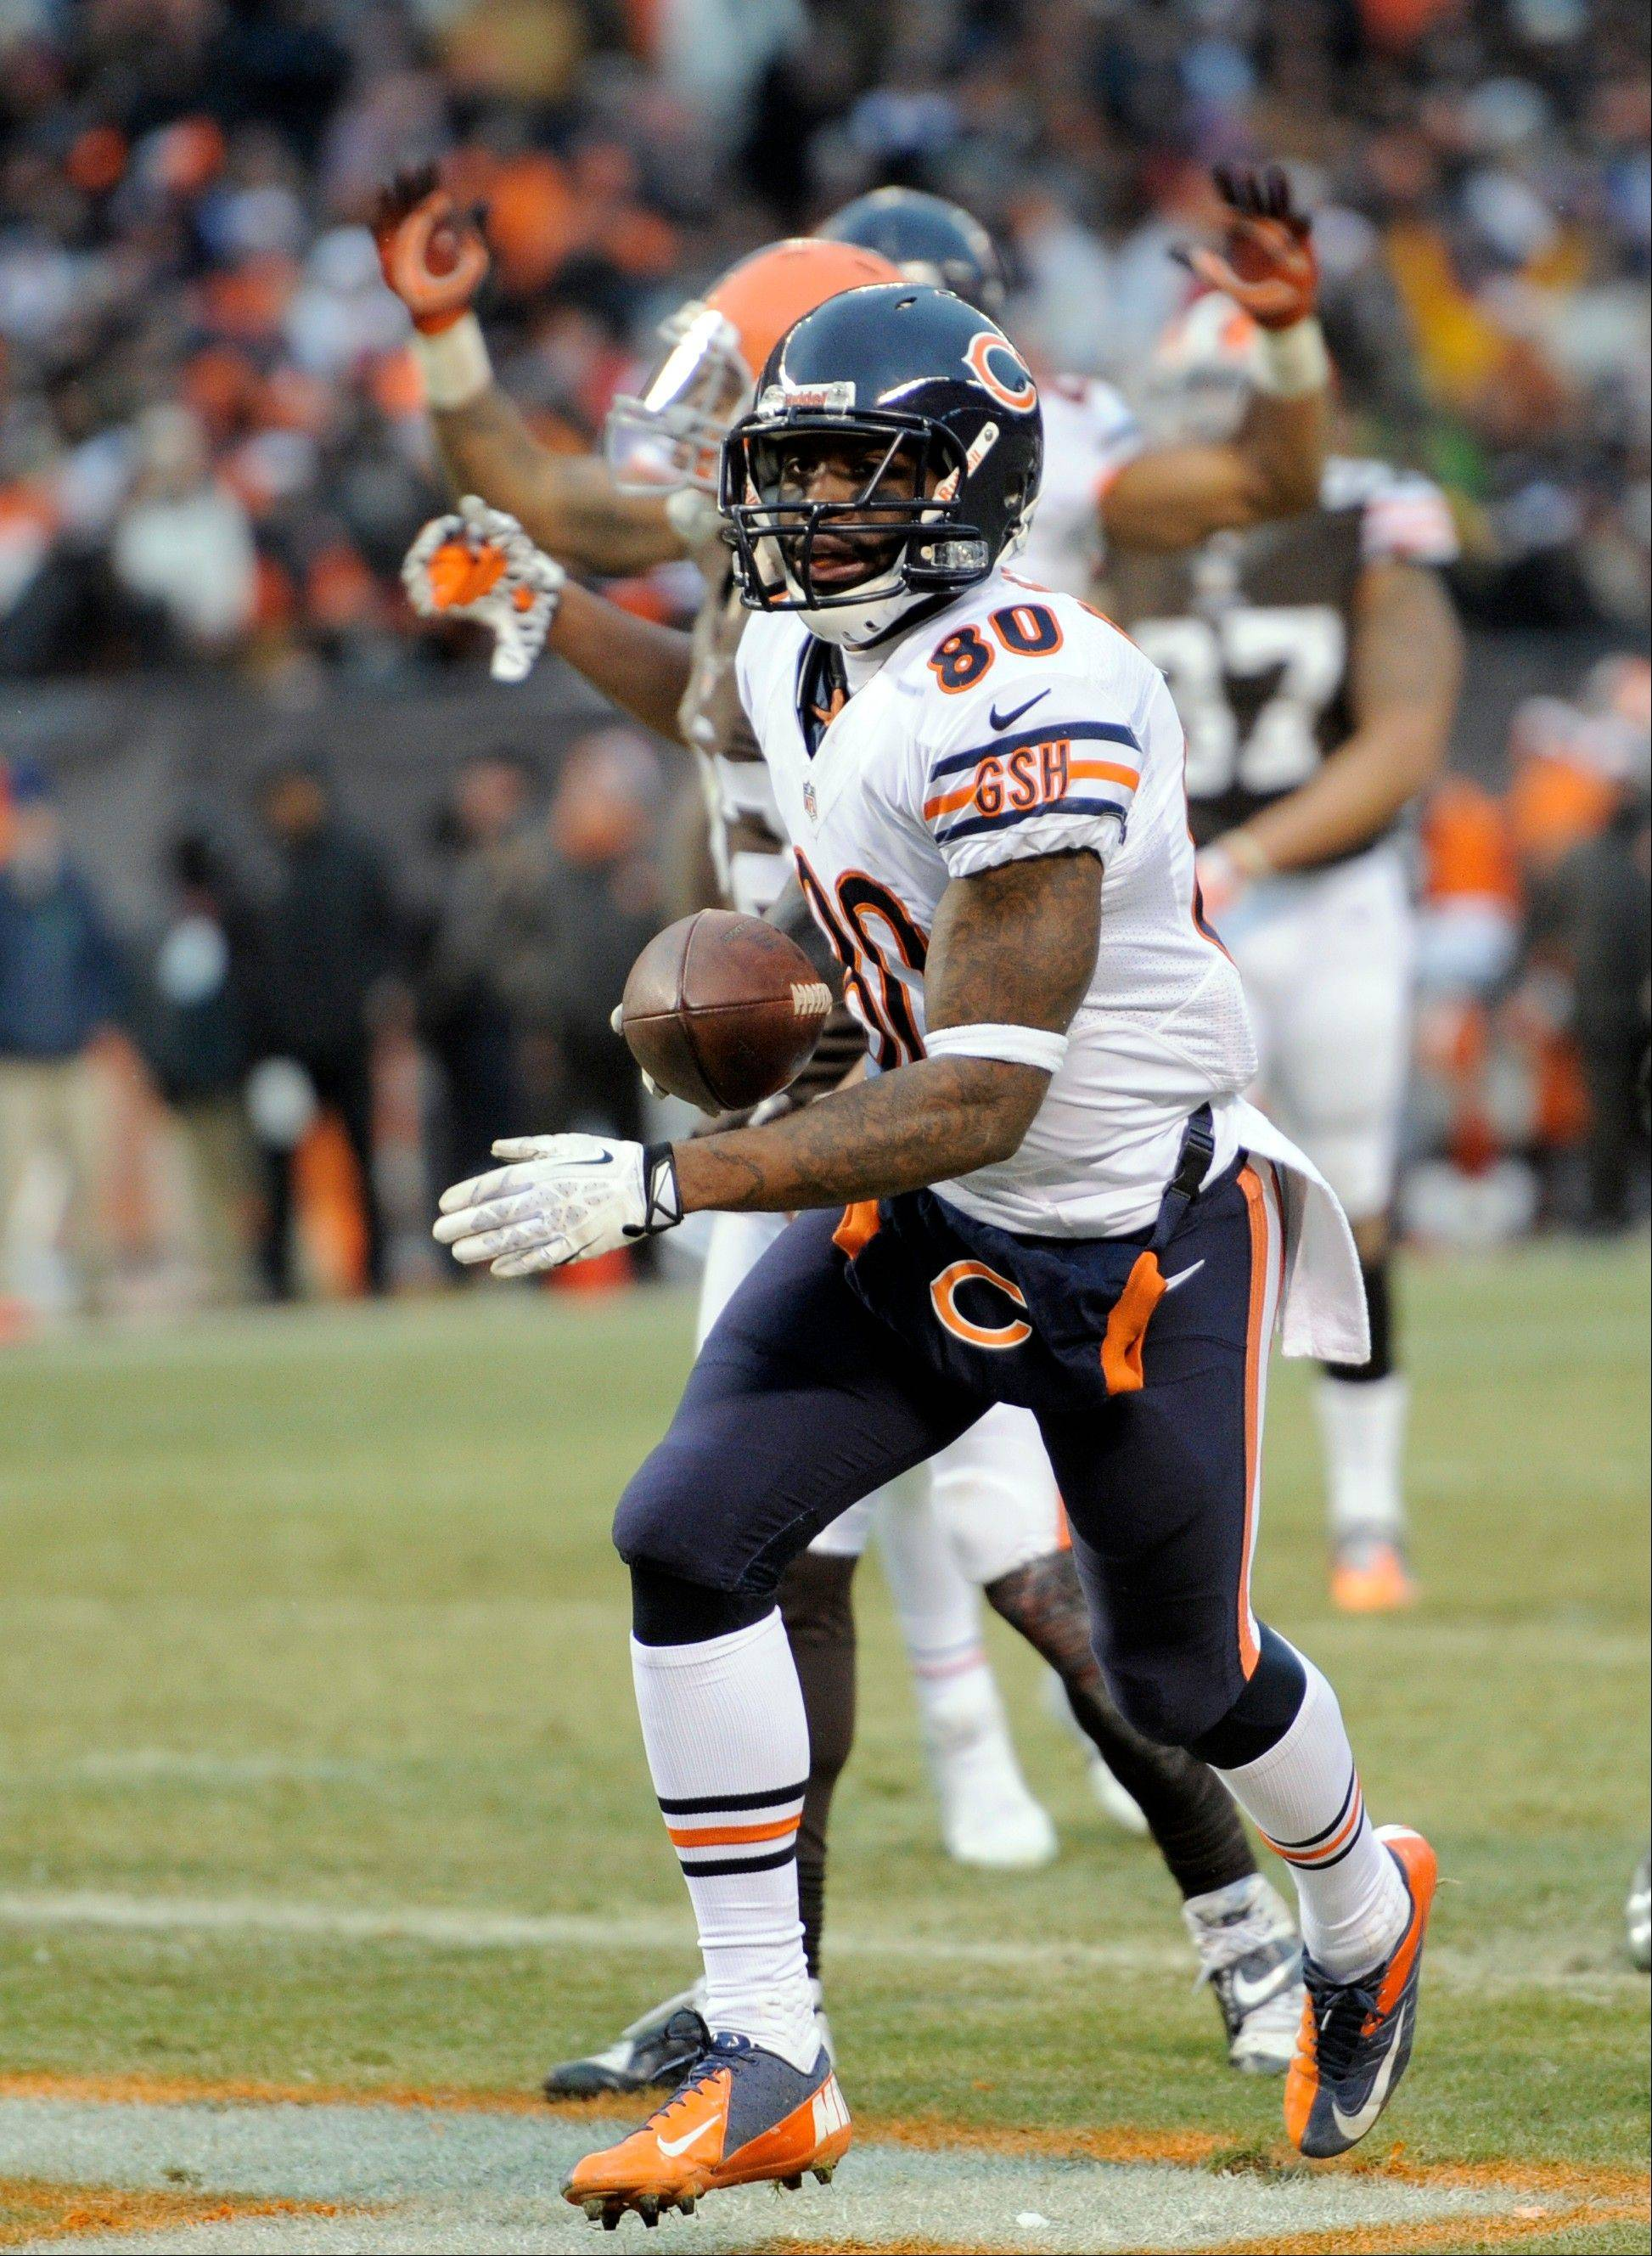 Chicago Bears wide receiver Earl Bennett (80) runs in to score on a 4-yard touchdown catch against the Cleveland Browns in the fourth quarter.